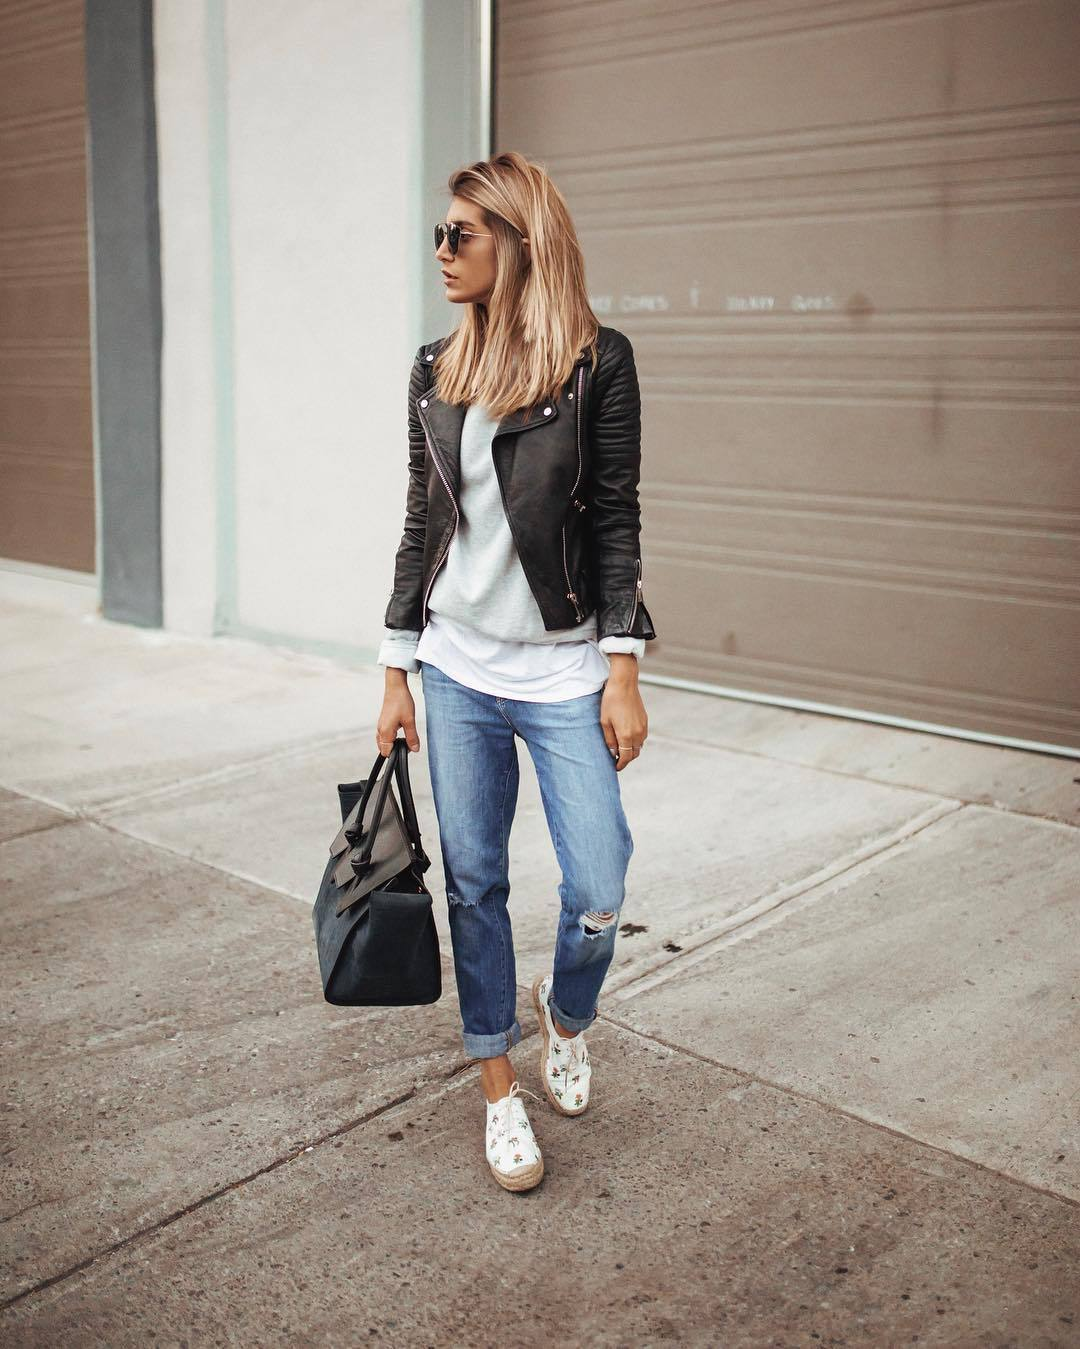 jeans ripped jeans boyfriend jeans white shoes platform shoes celine shoulder bag black leather jacket grey sweater white top